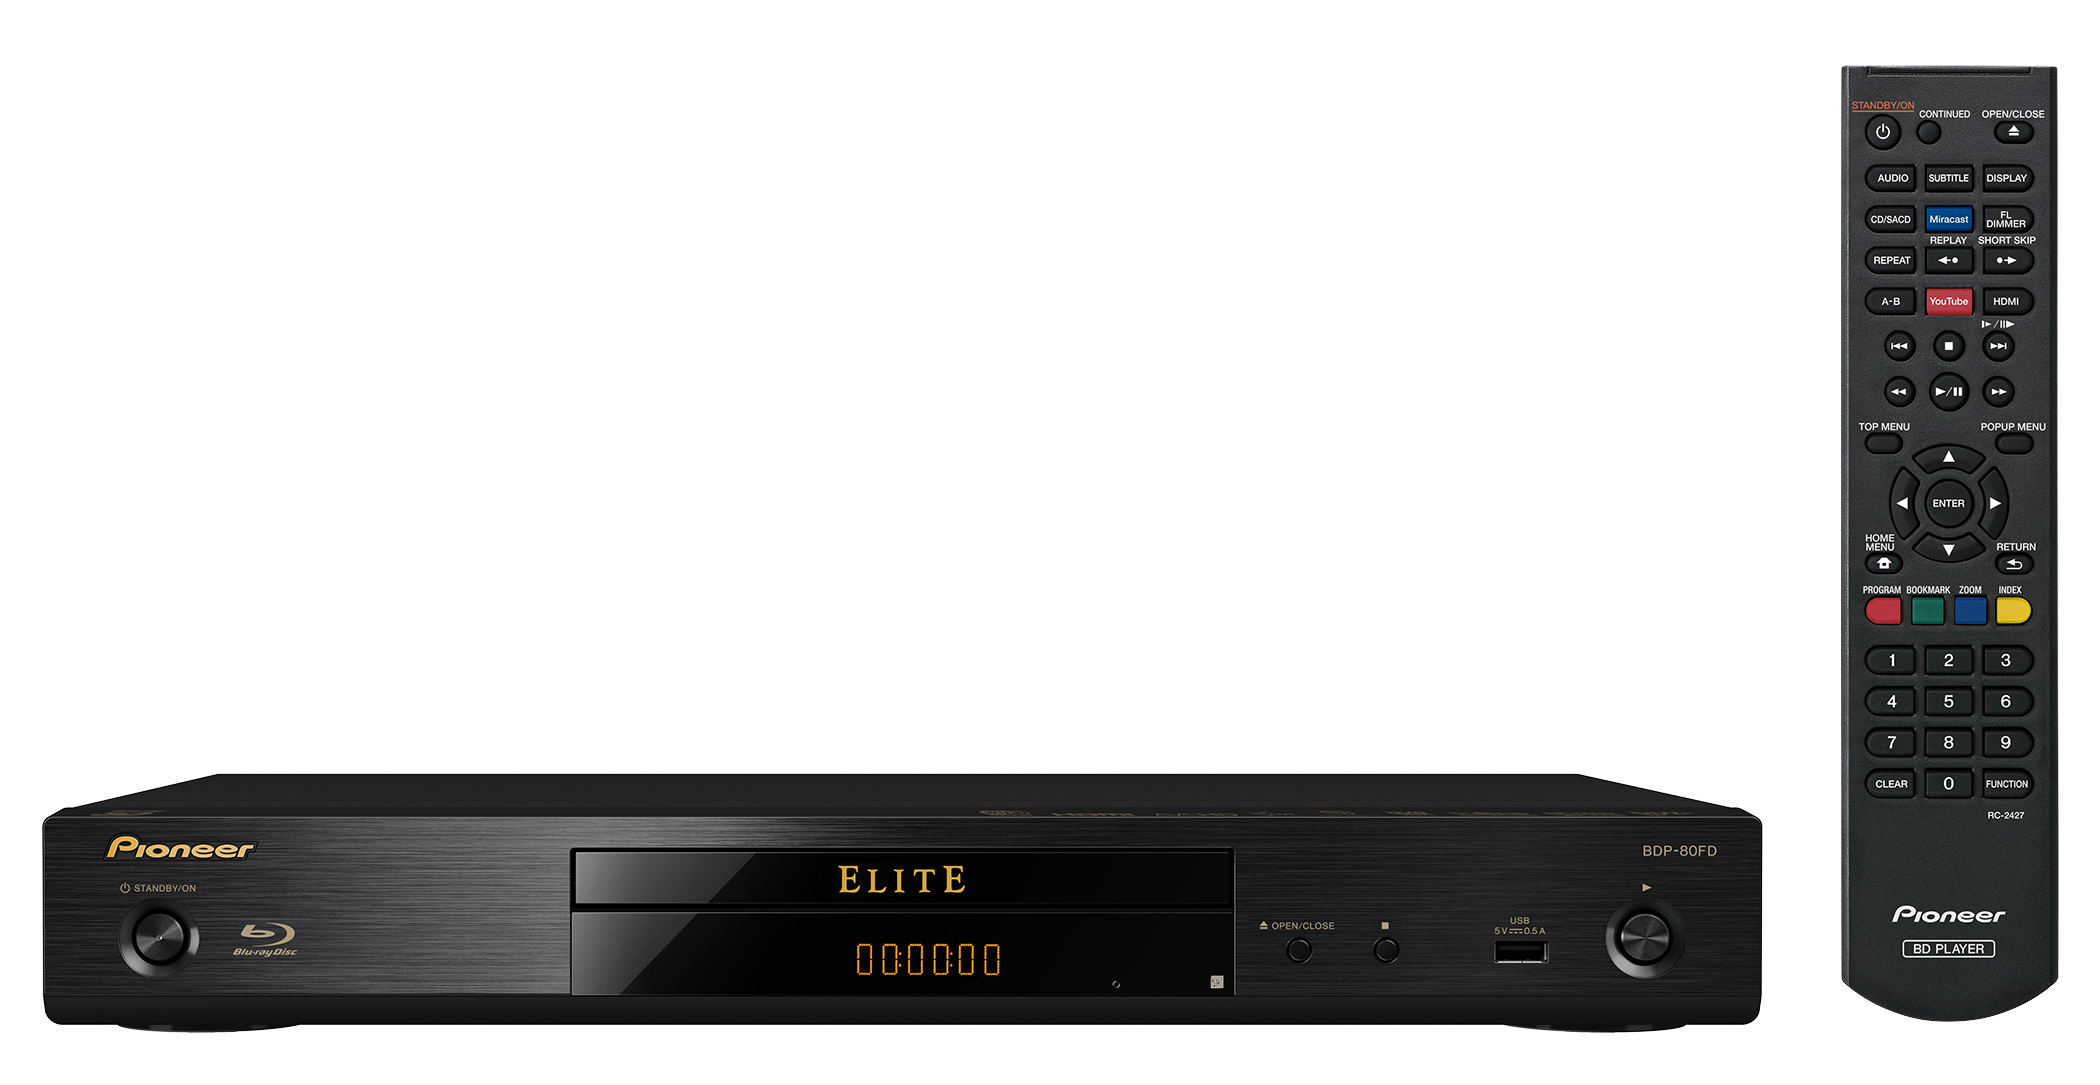 Elite BDP-80FD Blu-ray Disc Player (Photo: Business Wire)